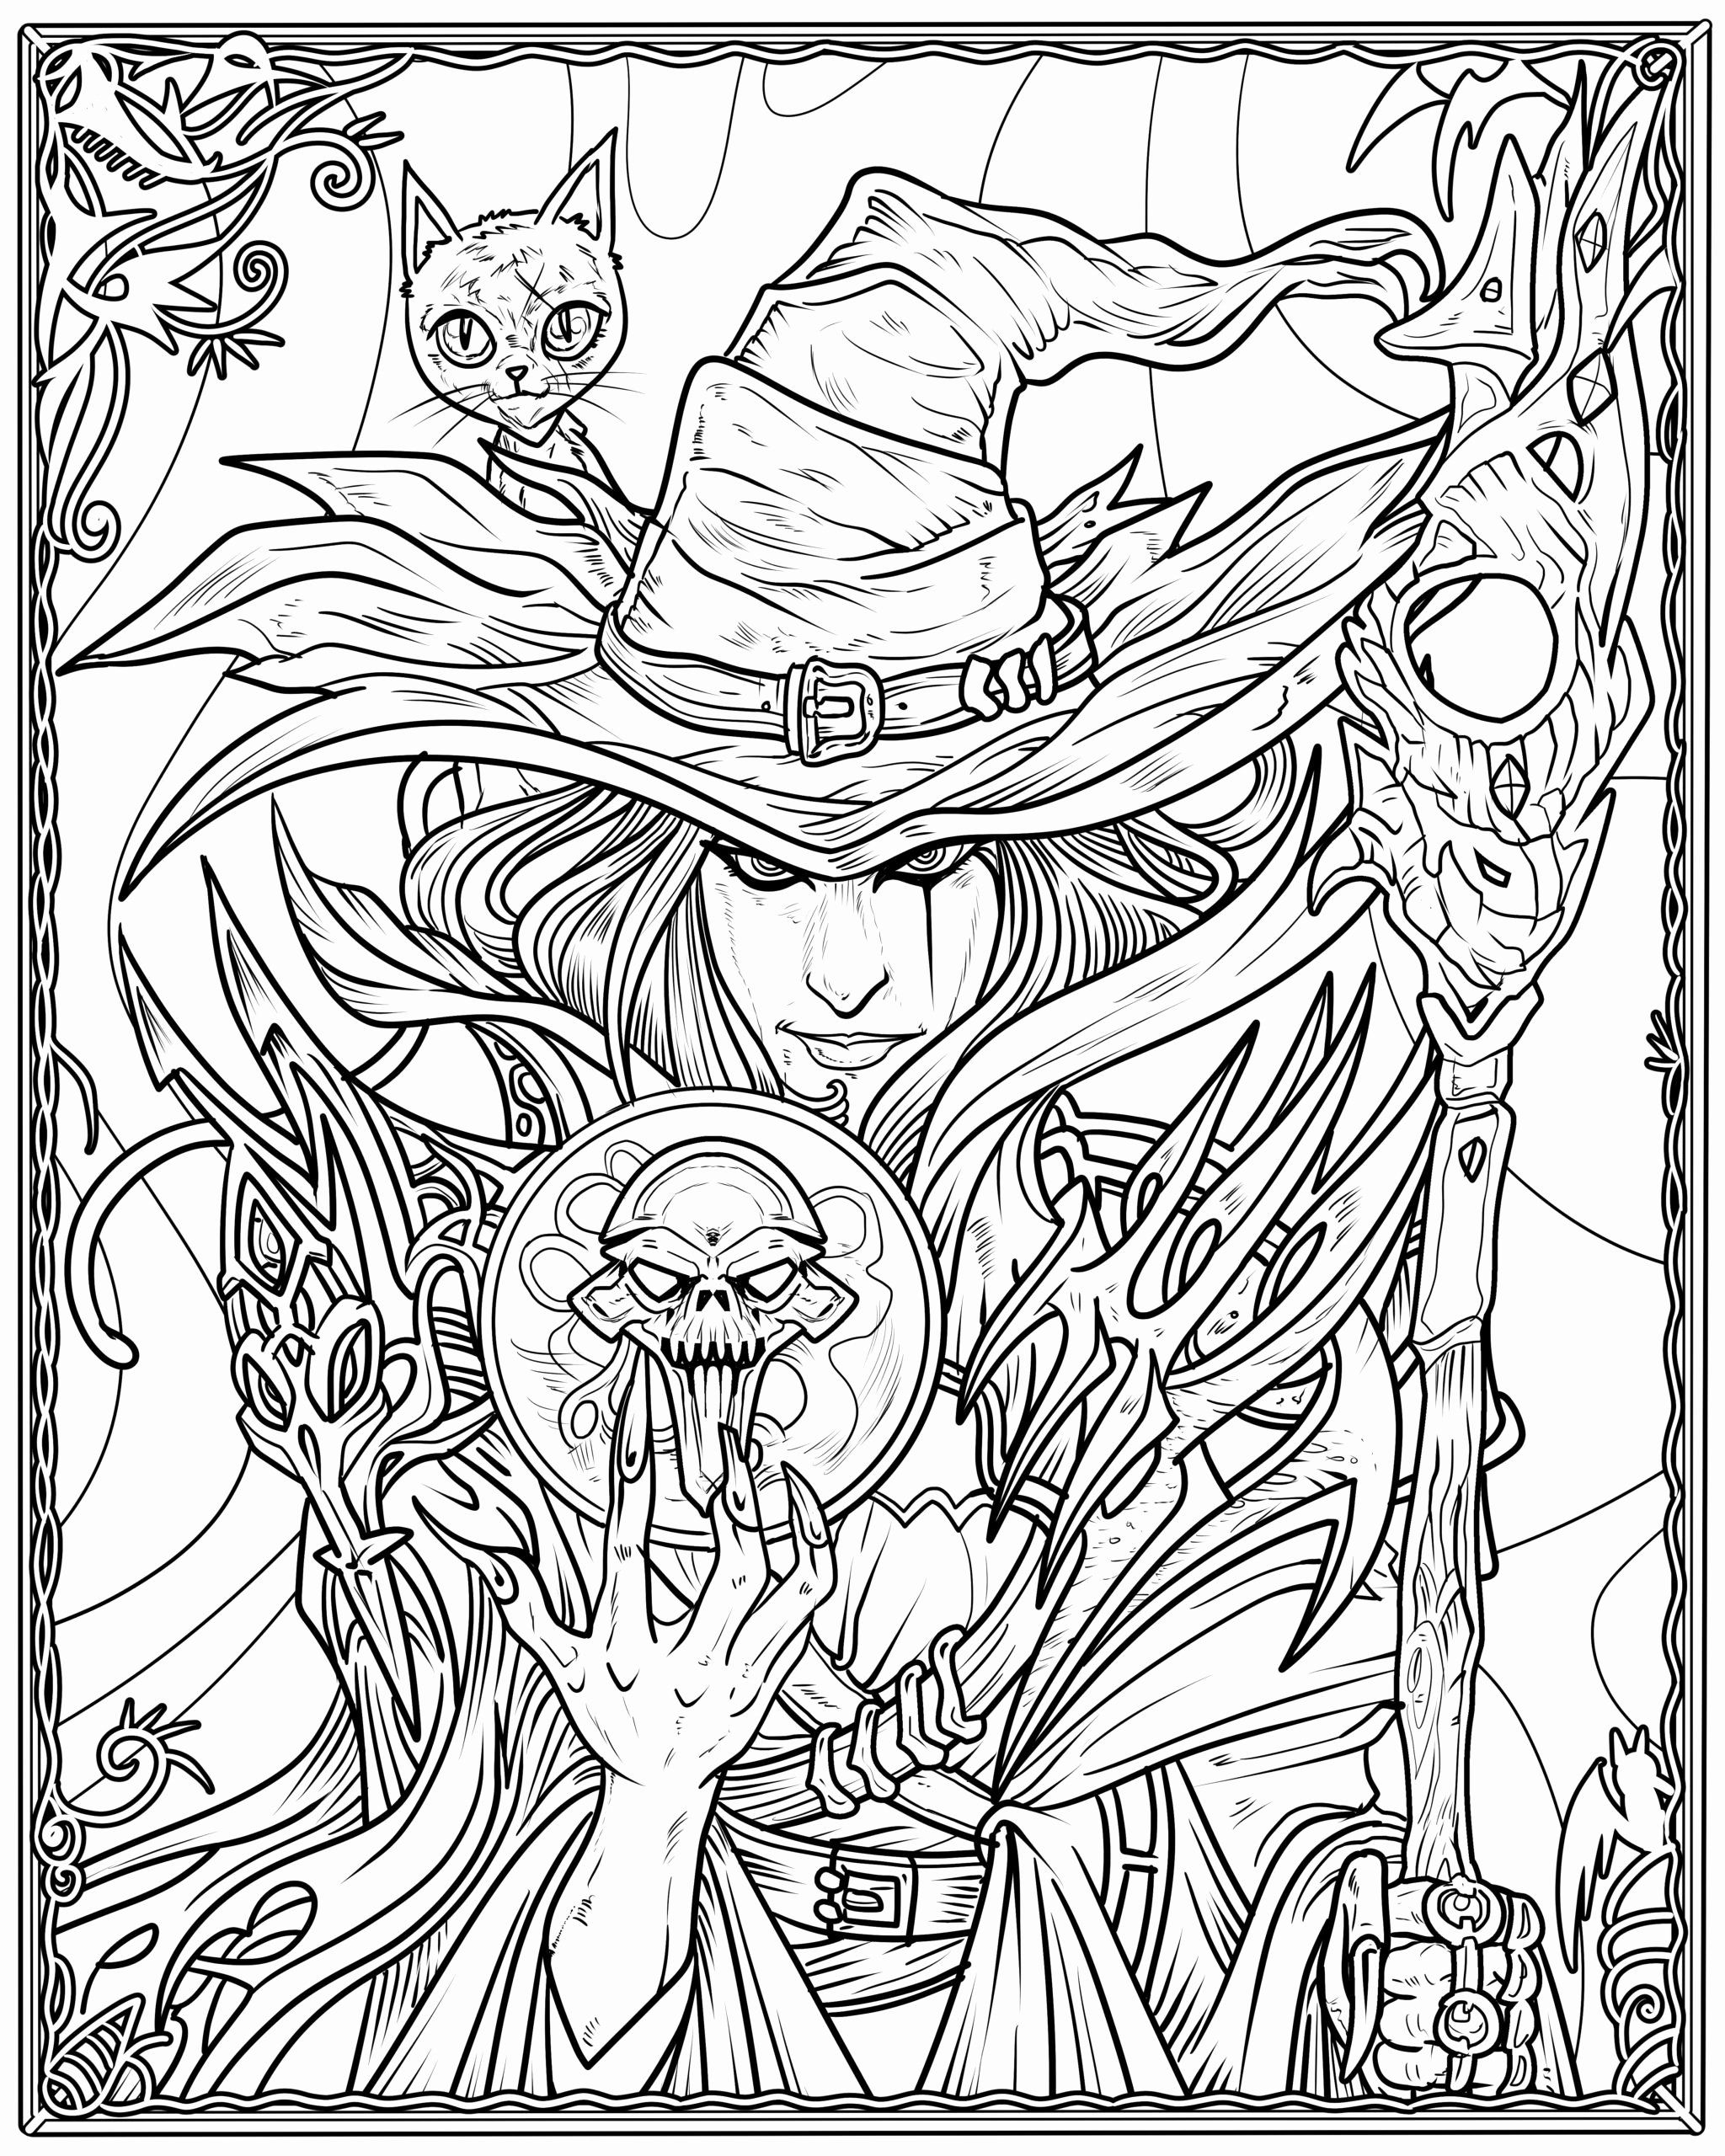 Complex Animal Coloring Pages Unique Coloring Cool Coloring Sheets Picture Inspirations Car Witch Coloring Pages Cool Coloring Pages Halloween Coloring Pages